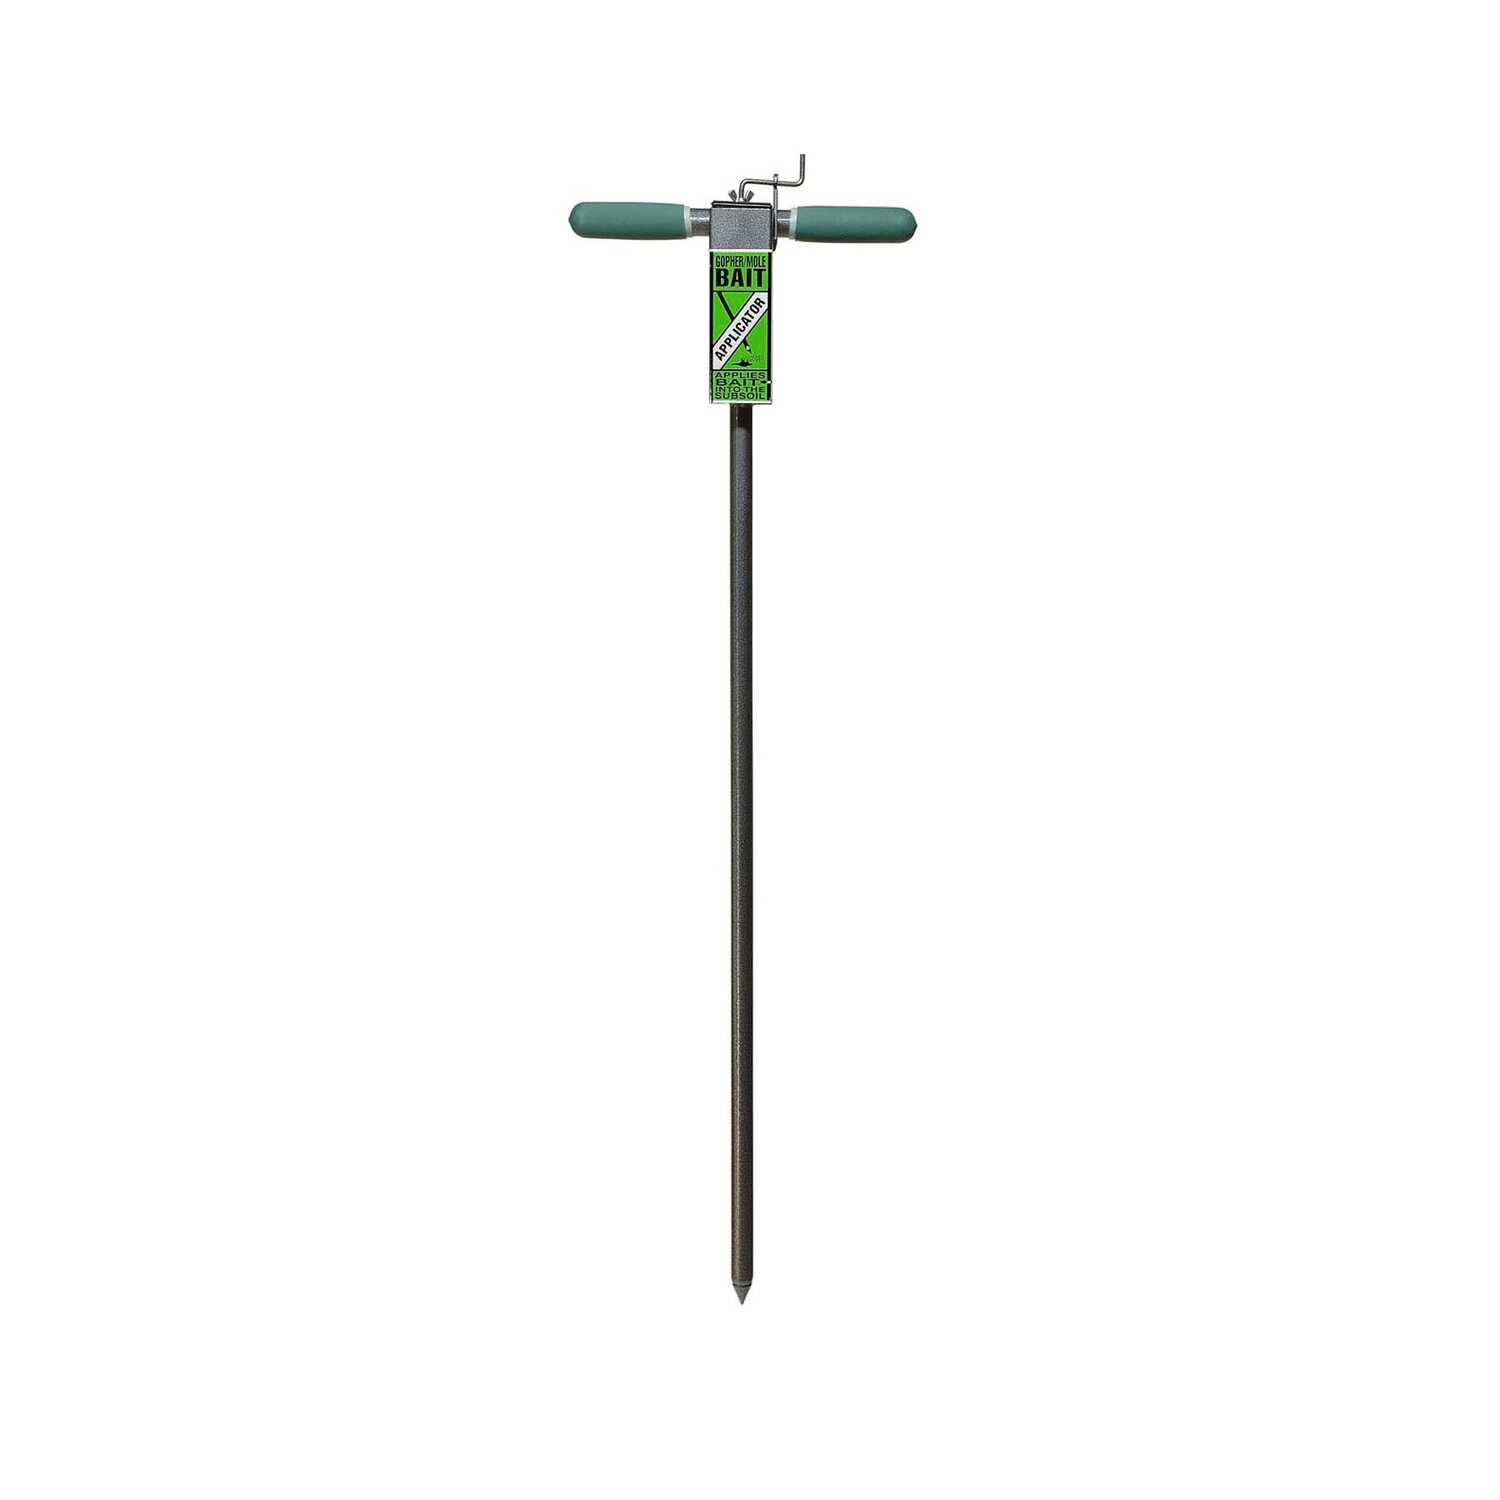 Yard Butler  37 in. Mole and Gopher Bait Applicator  Steel